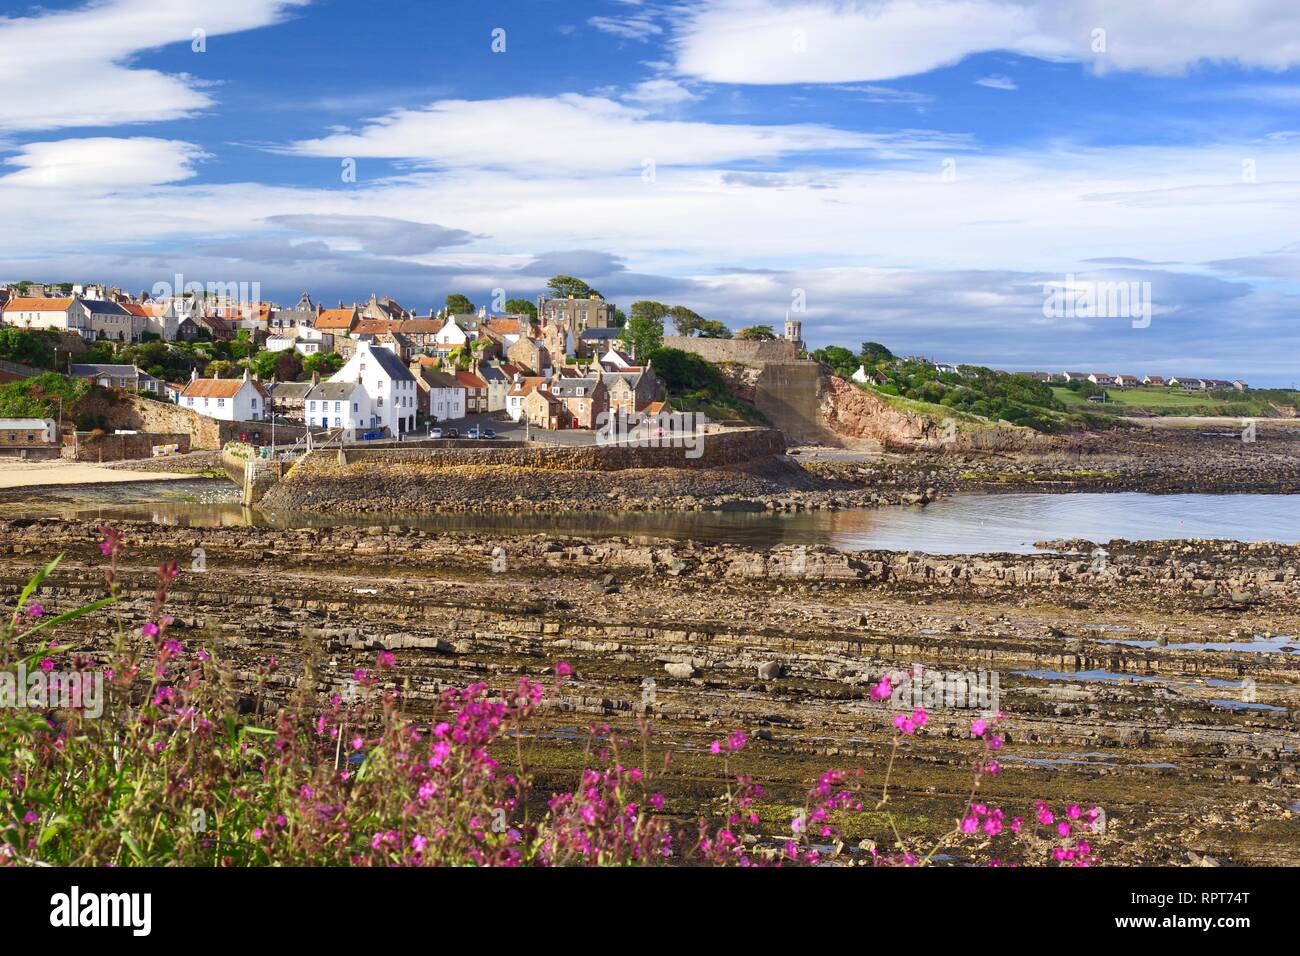 Small Medieval Harbour and Fishing Village of Crail, along the Fife Coast in Summer. Scotland, UK. Stock Photo